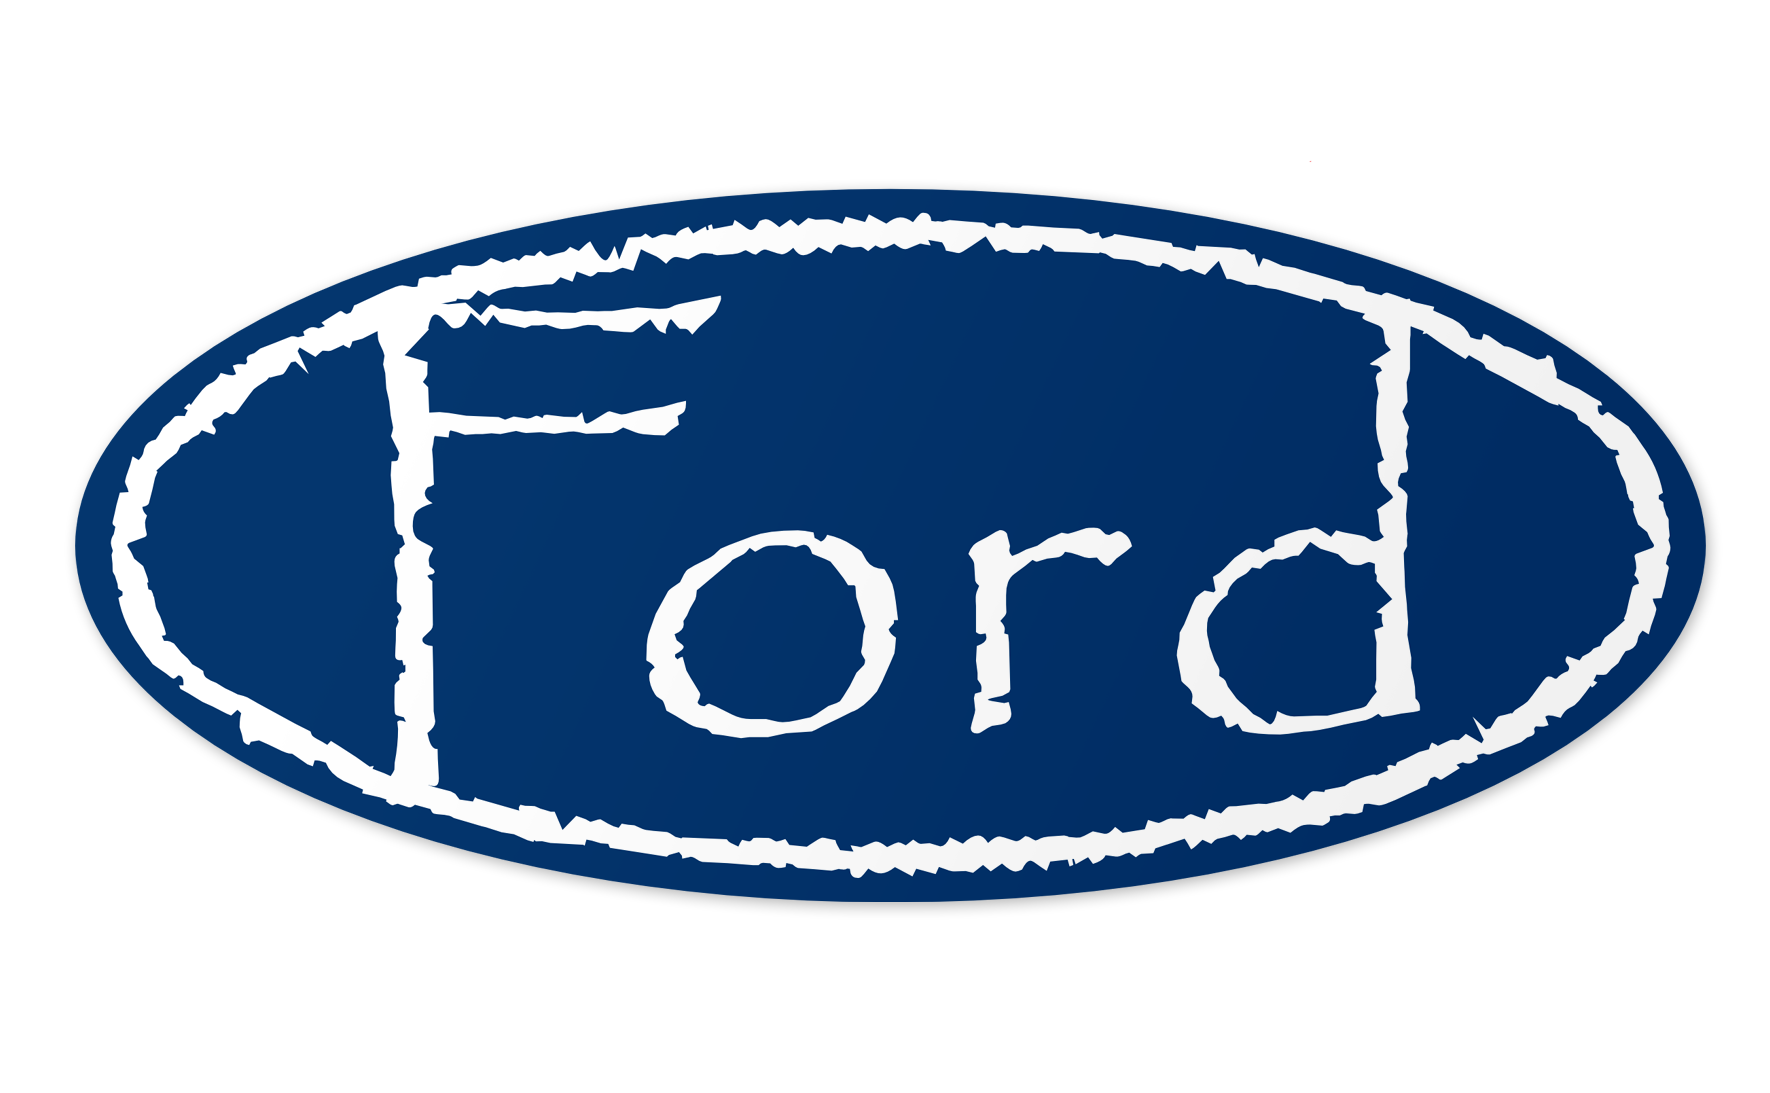 Ford logo letters png. Famous logos in papyrus